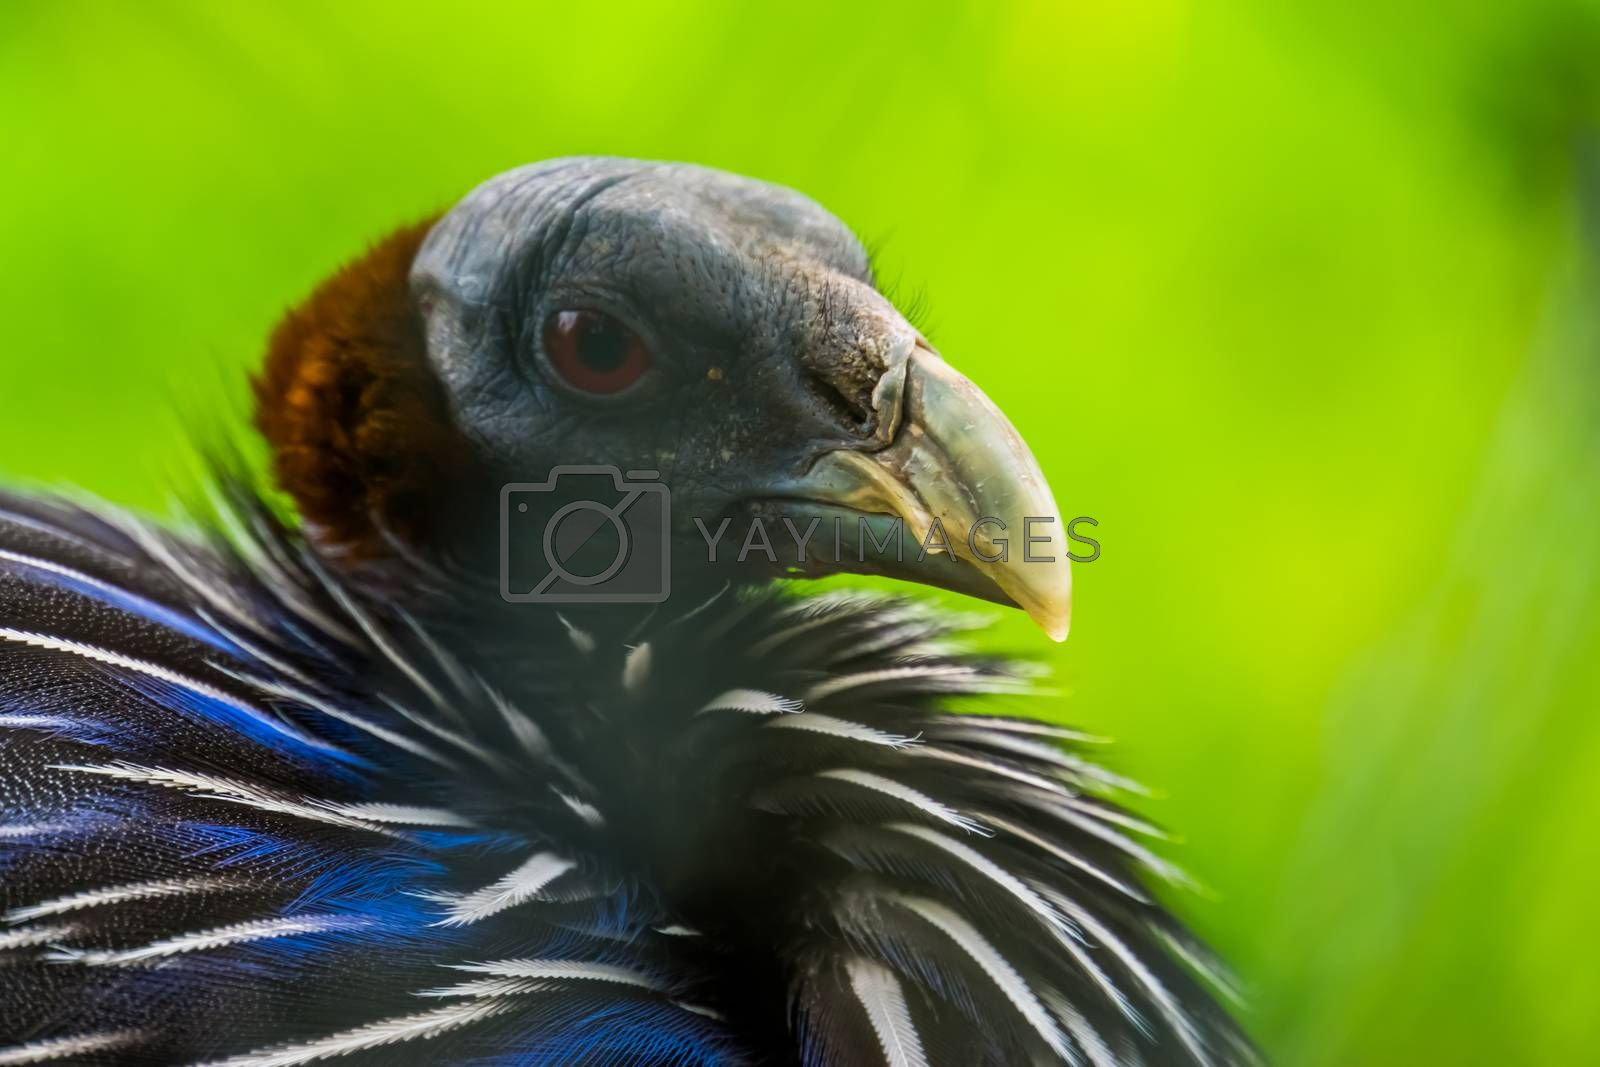 the face of a vulturine guineafowl in closeup, colorful tropical pheasant from Africa